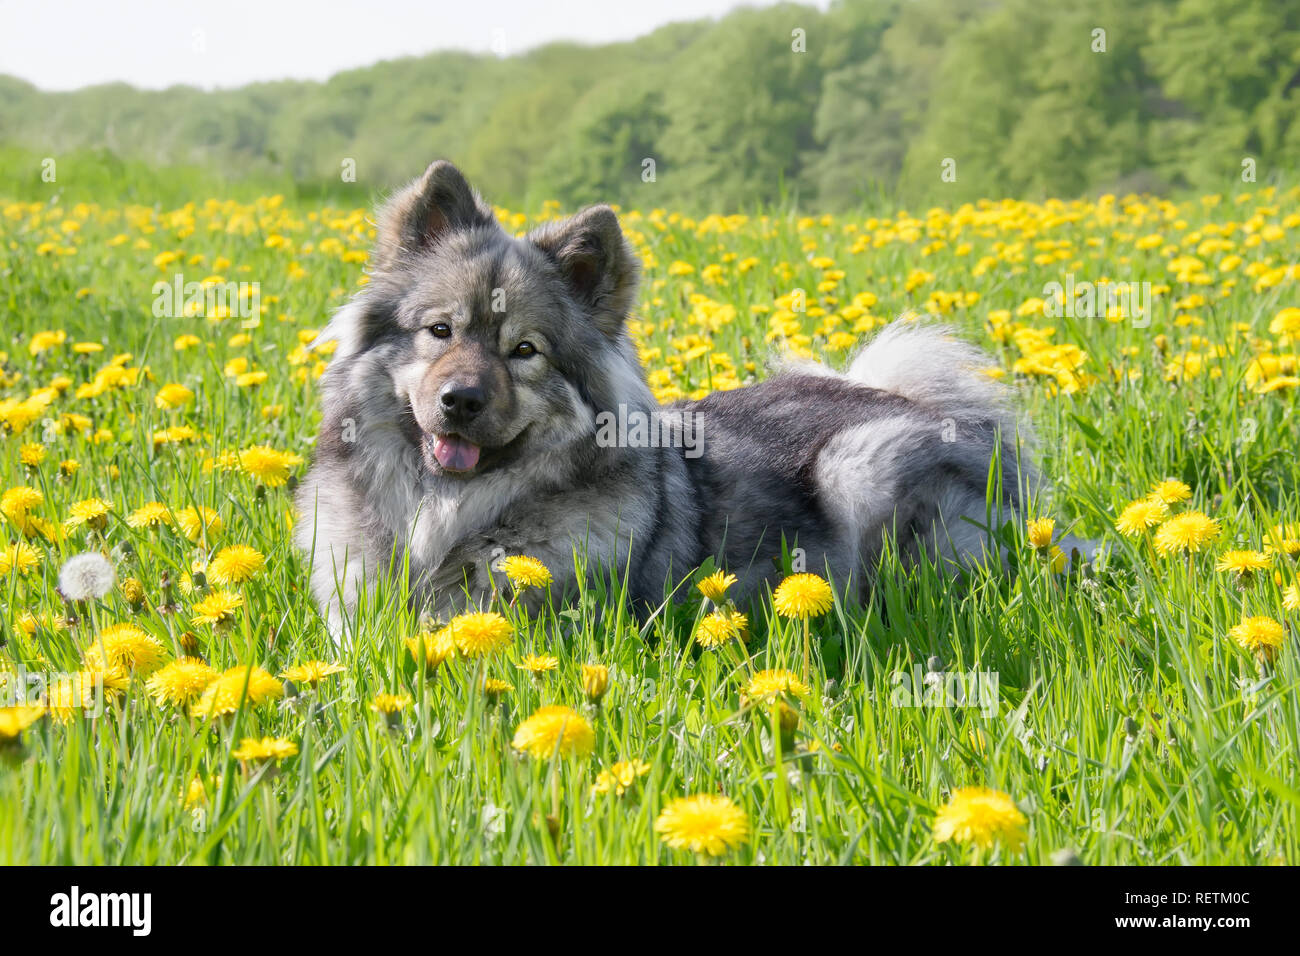 A cute Eurasier dog (Spitz type) is lying in a meadow with yellow dandelion flowers on a sunny day in spring - Stock Image